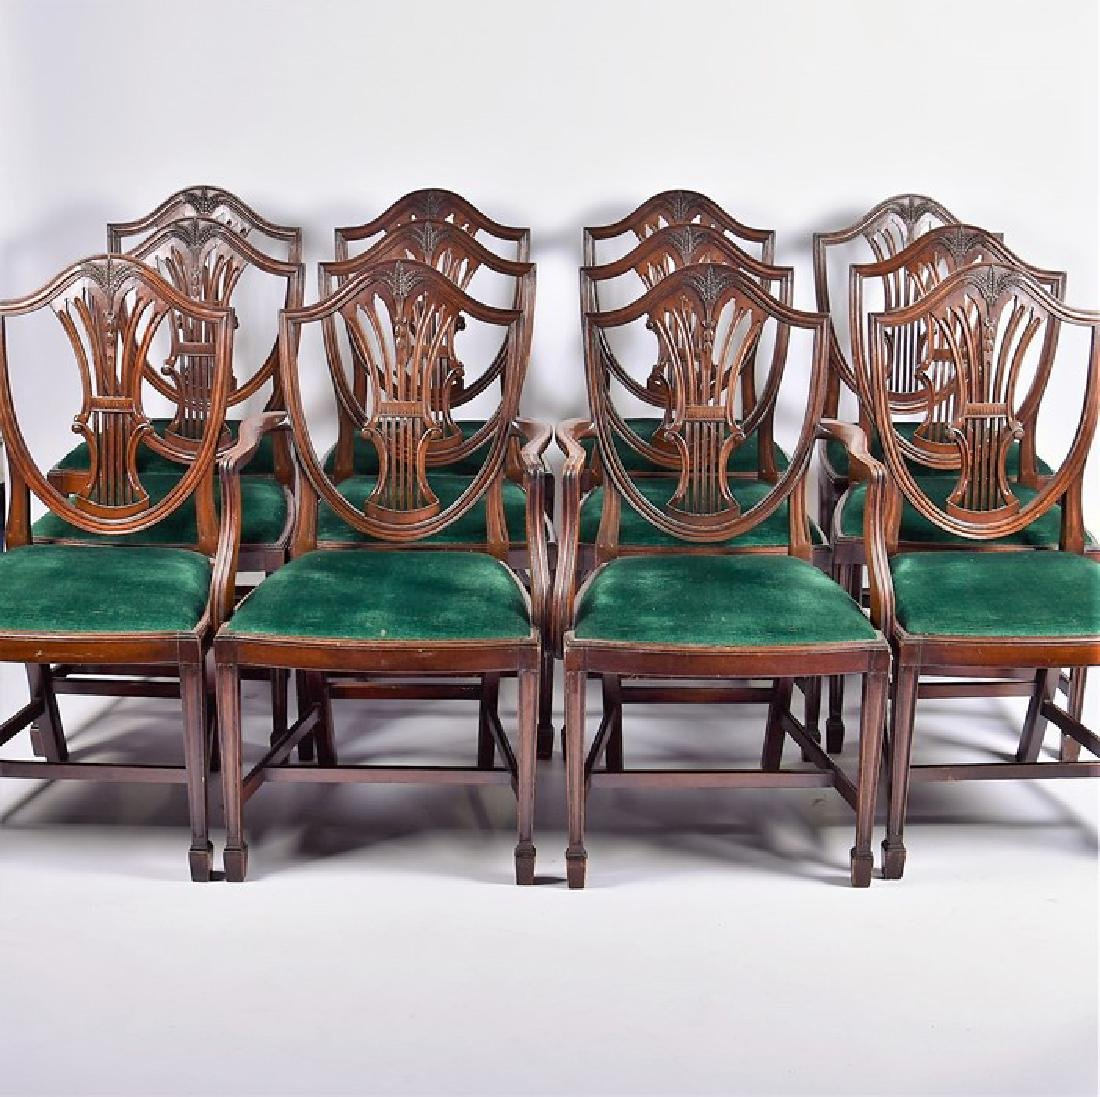 A set of twelve Sheraton style mahogany dining chairs